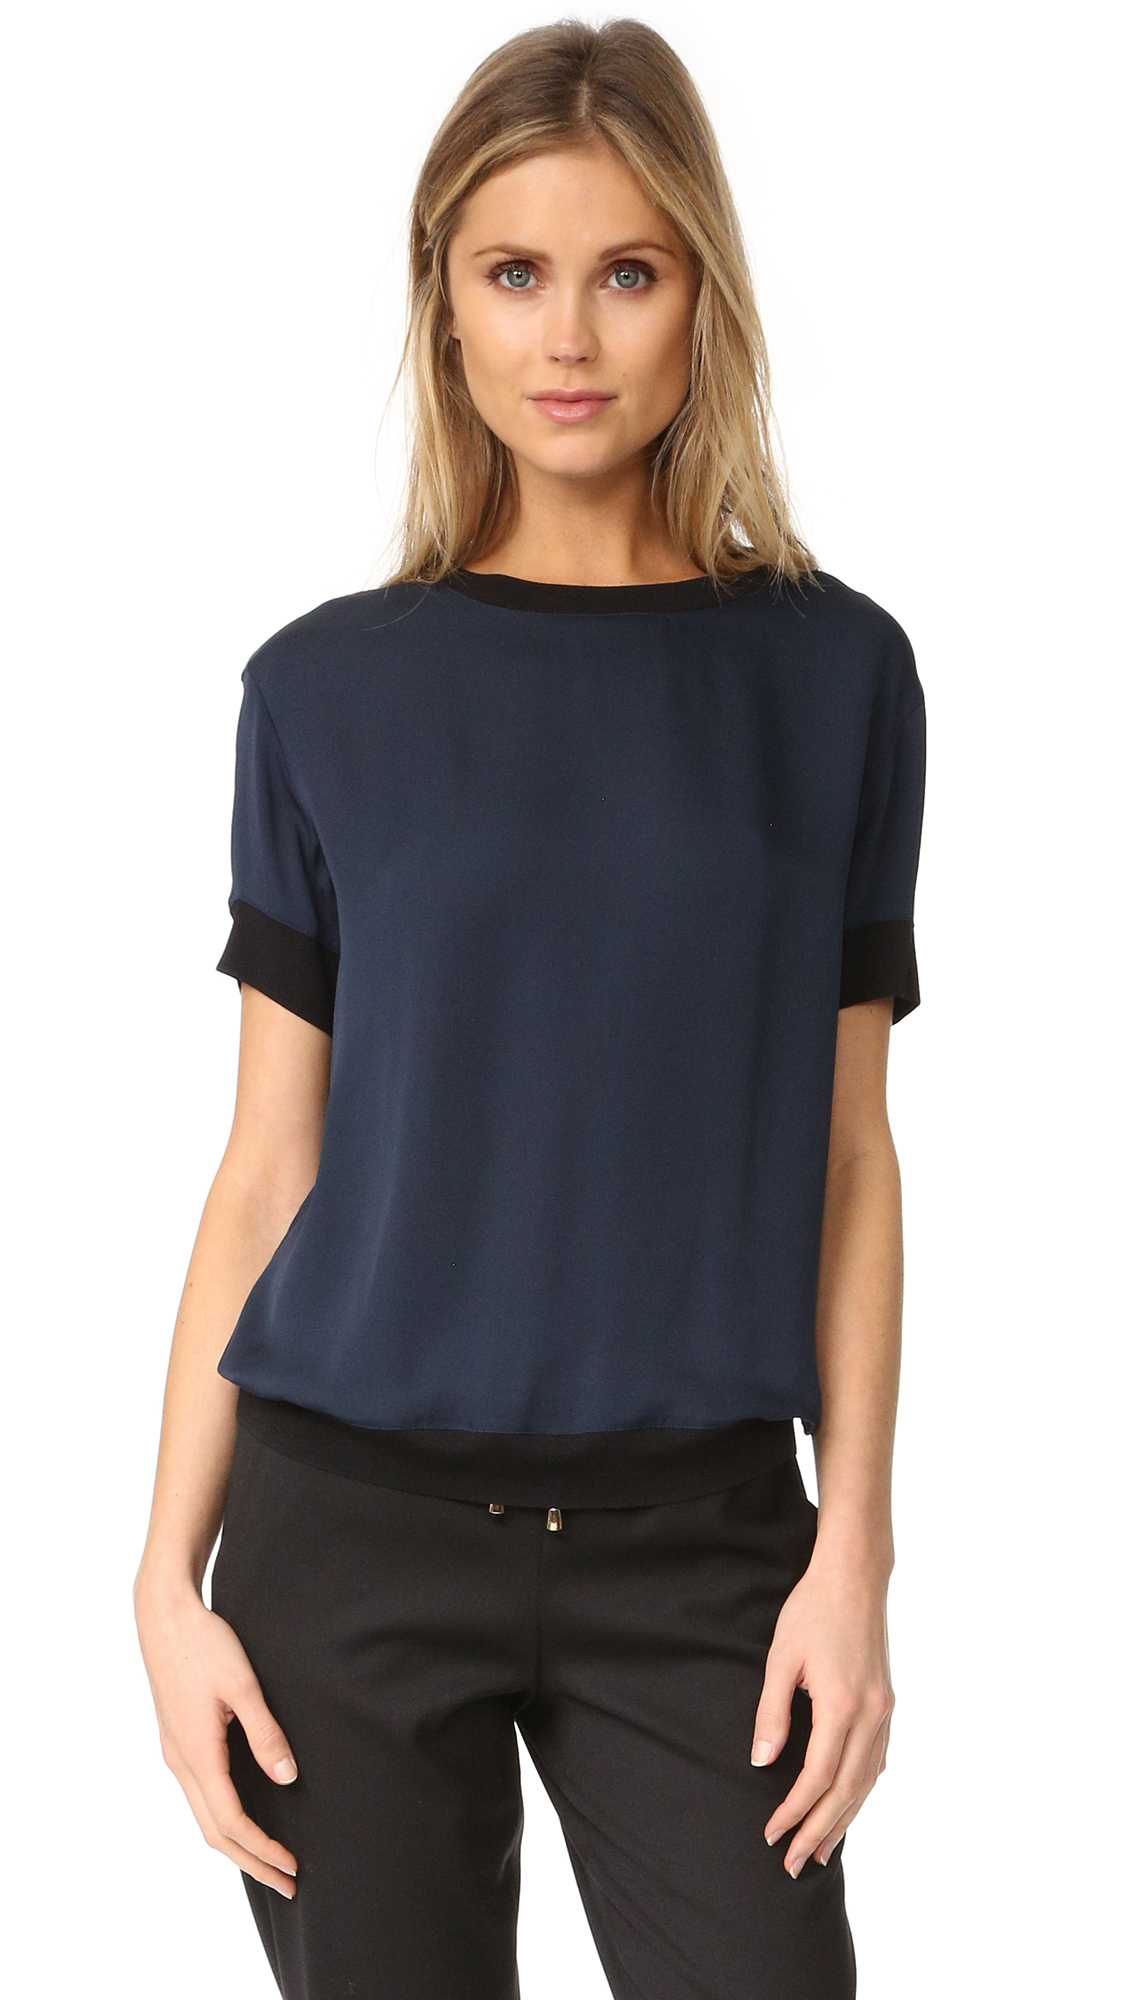 Vince Contrast Trim Silk Tee - Coastal/Black at Shopbop